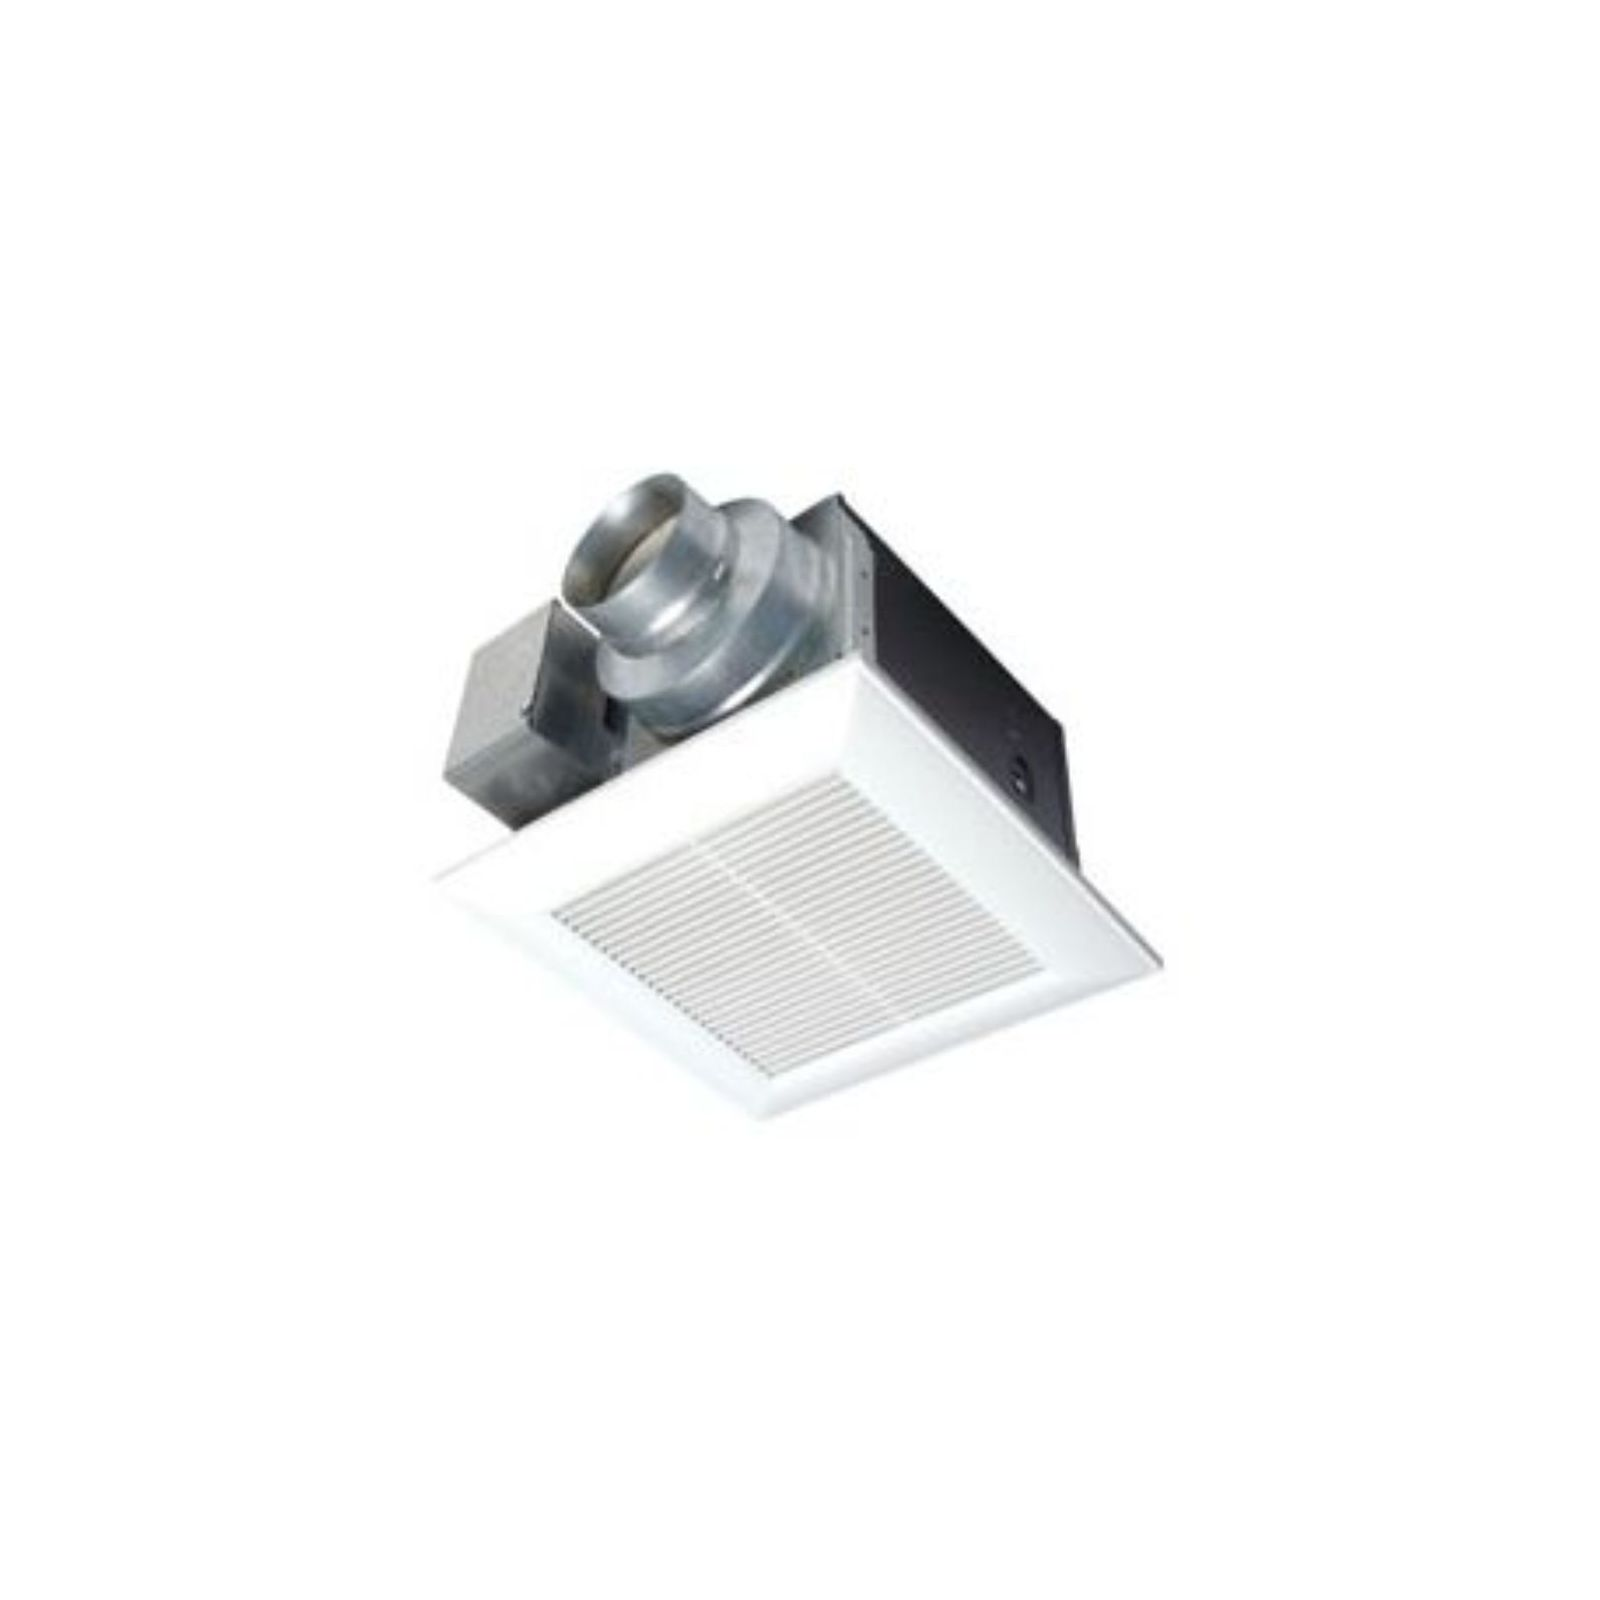 Panasonic FV-13VKM3 - WhisperGreena® 130 CFM Ceiling Mounted Ventilation Fan, DC Motor, Variable Speed Controls, Motion Sensor